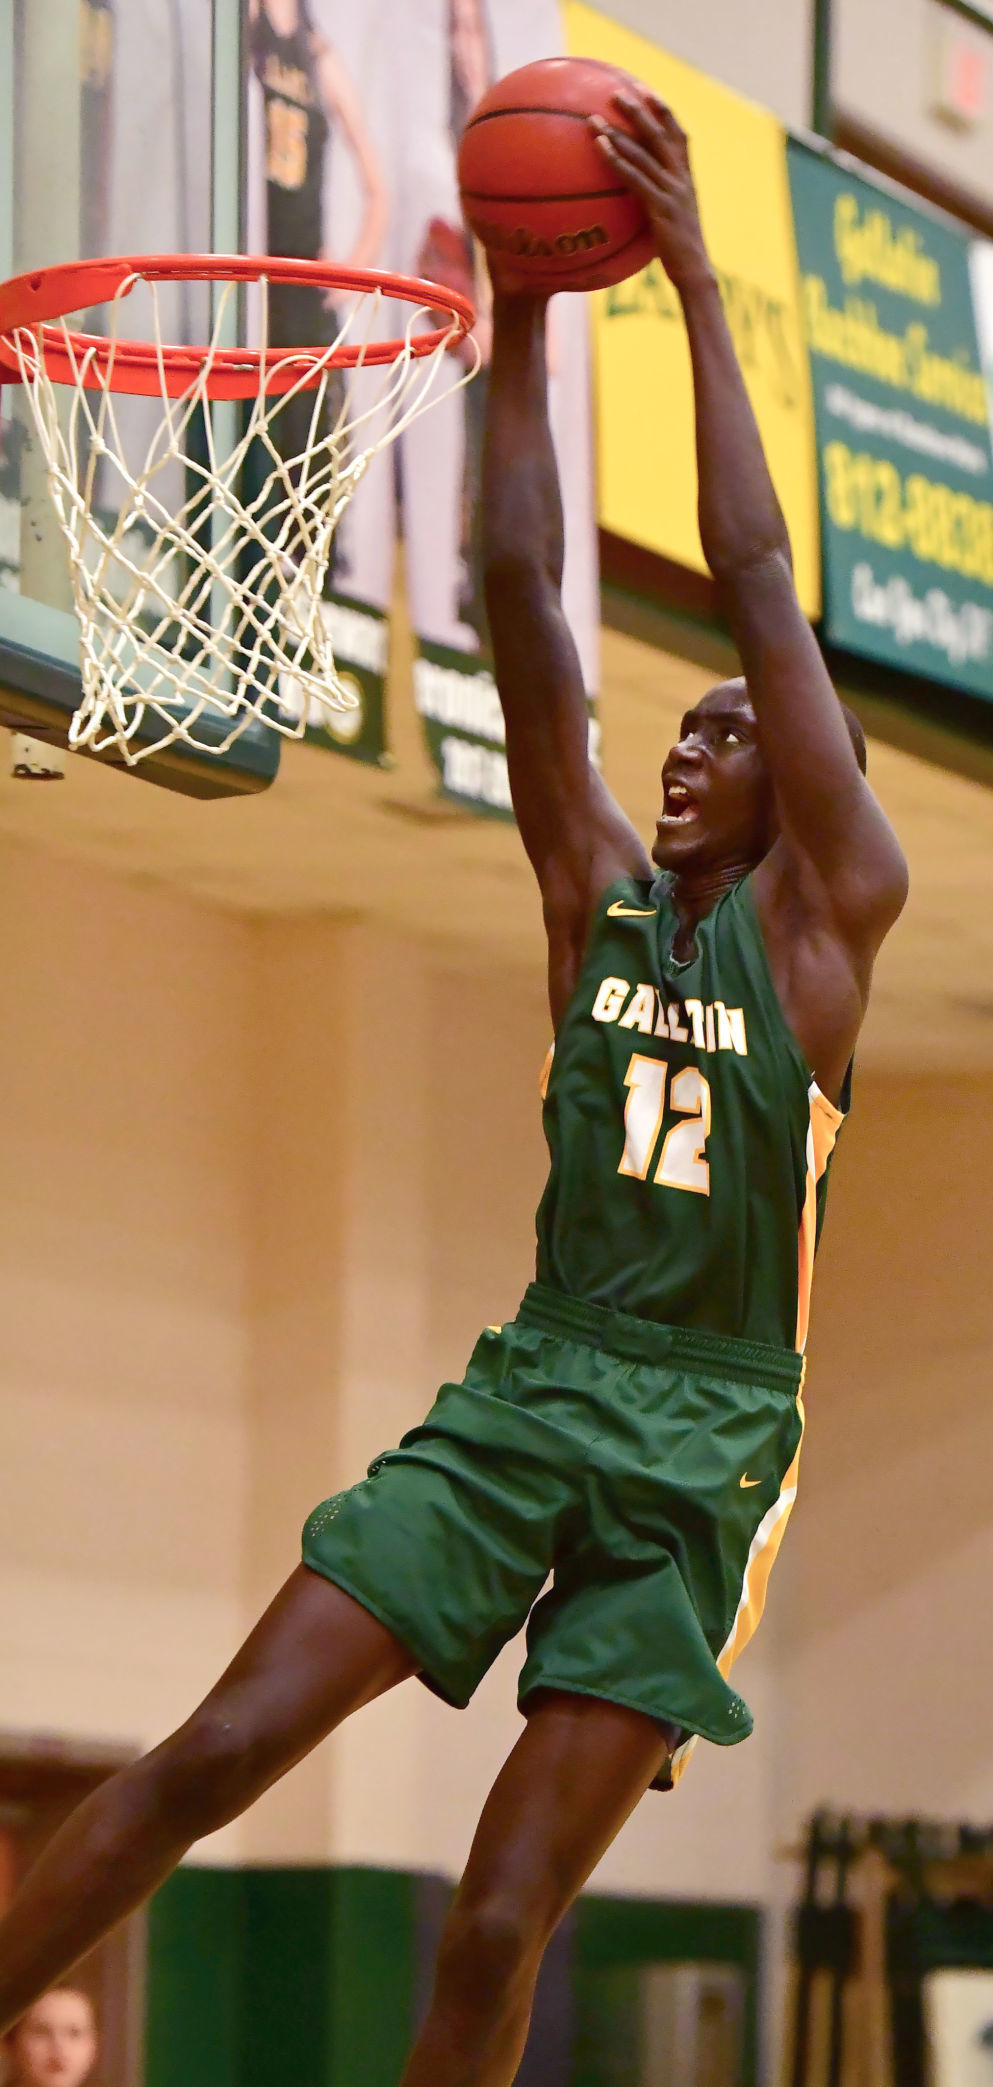 Gallatin's Zool Kueth is making a name for himself in the JUCO ranks, garnering 2nd Team All-KJCCC